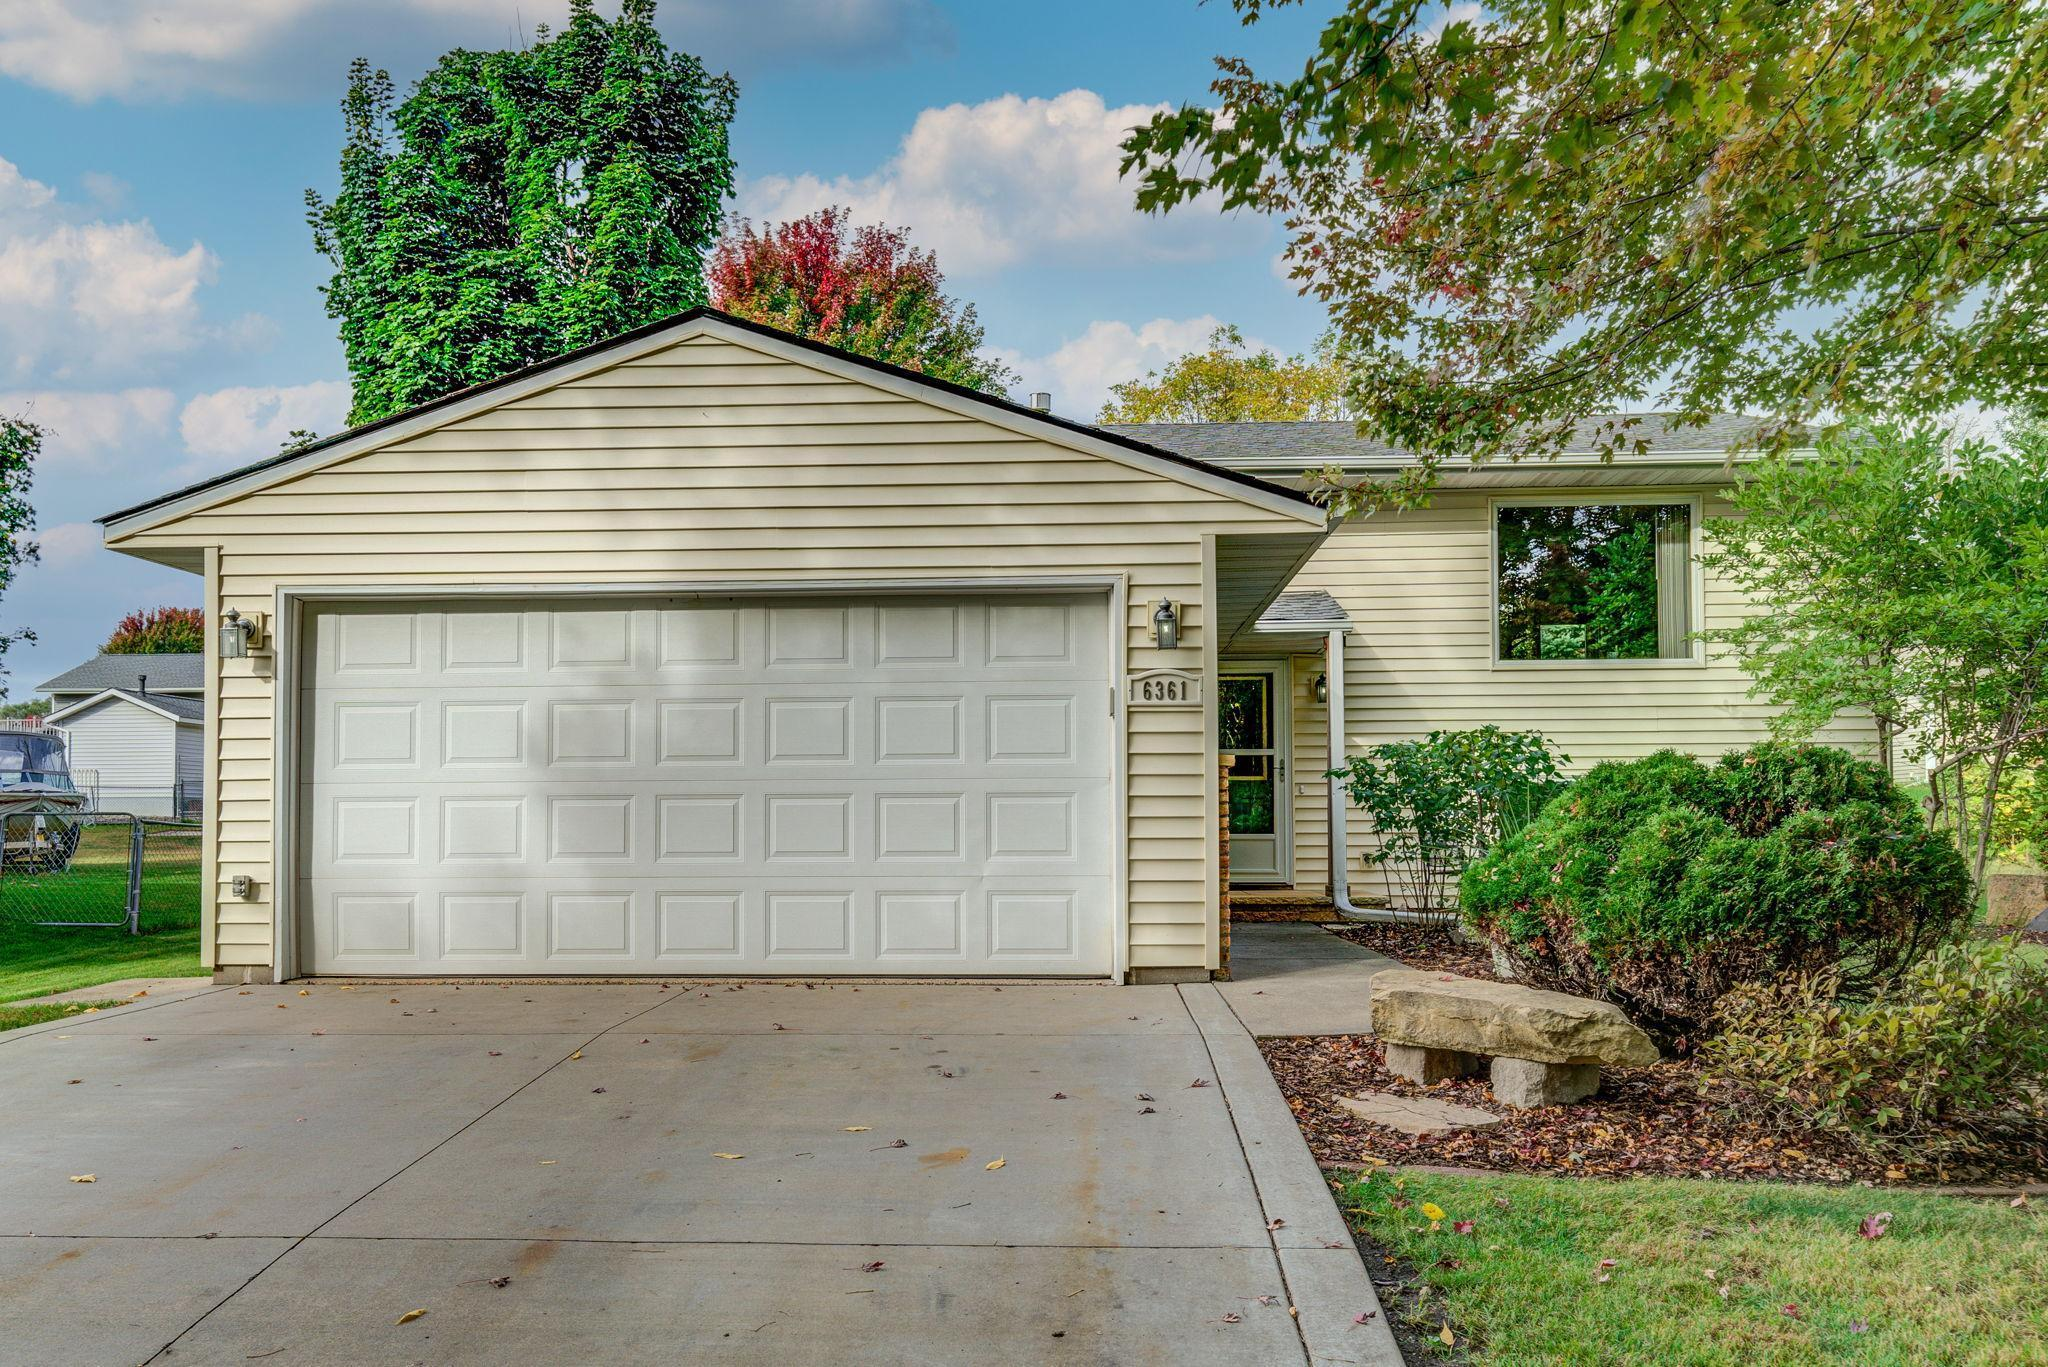 6361 Crosby Avenue Property Photo - Inver Grove Heights, MN real estate listing